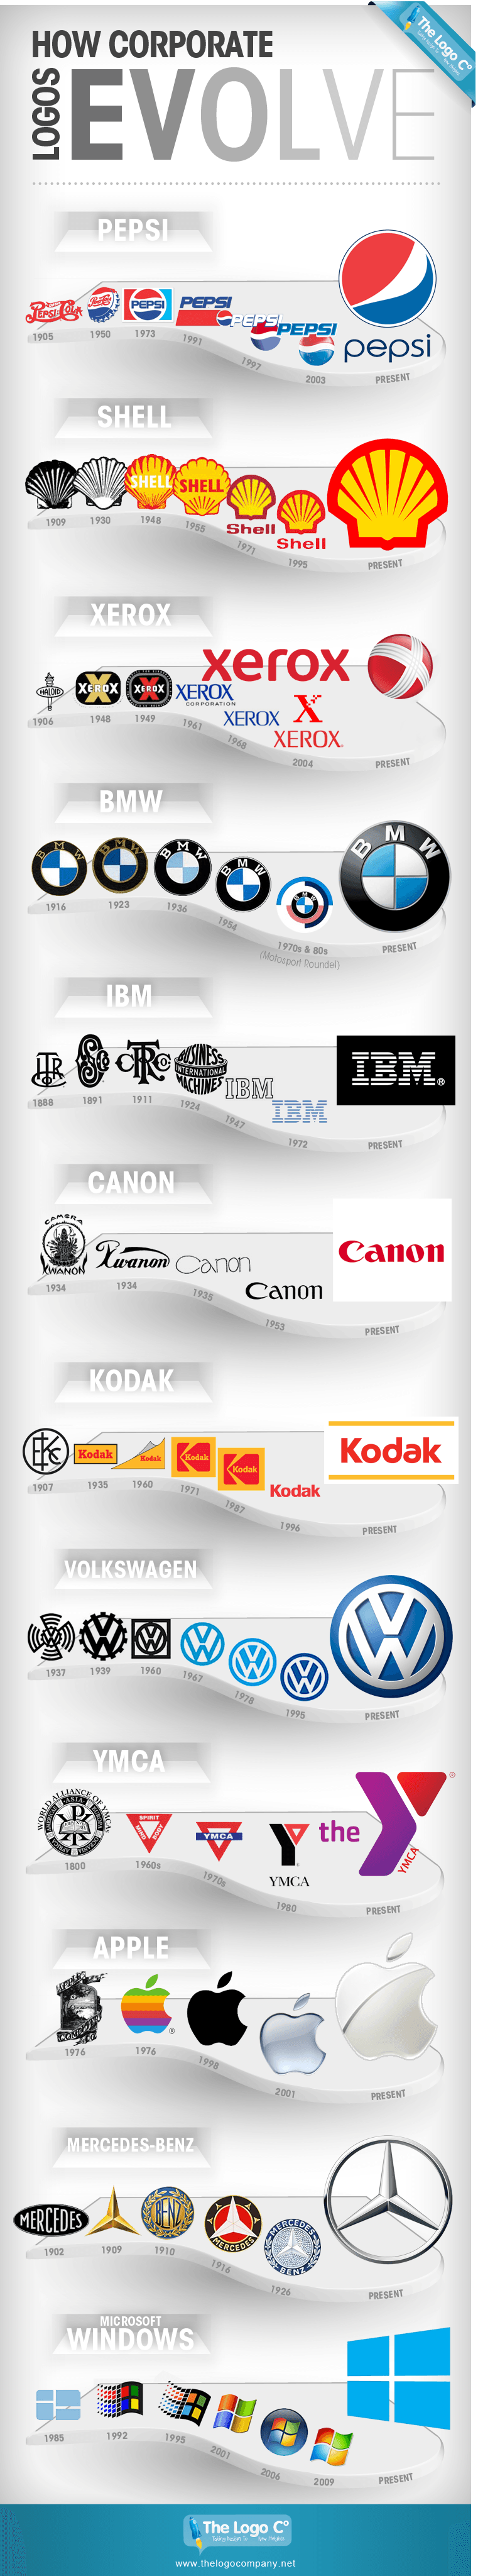 Iconic Logo Timeline Shows There's No One Way to Evolve [Infographic]